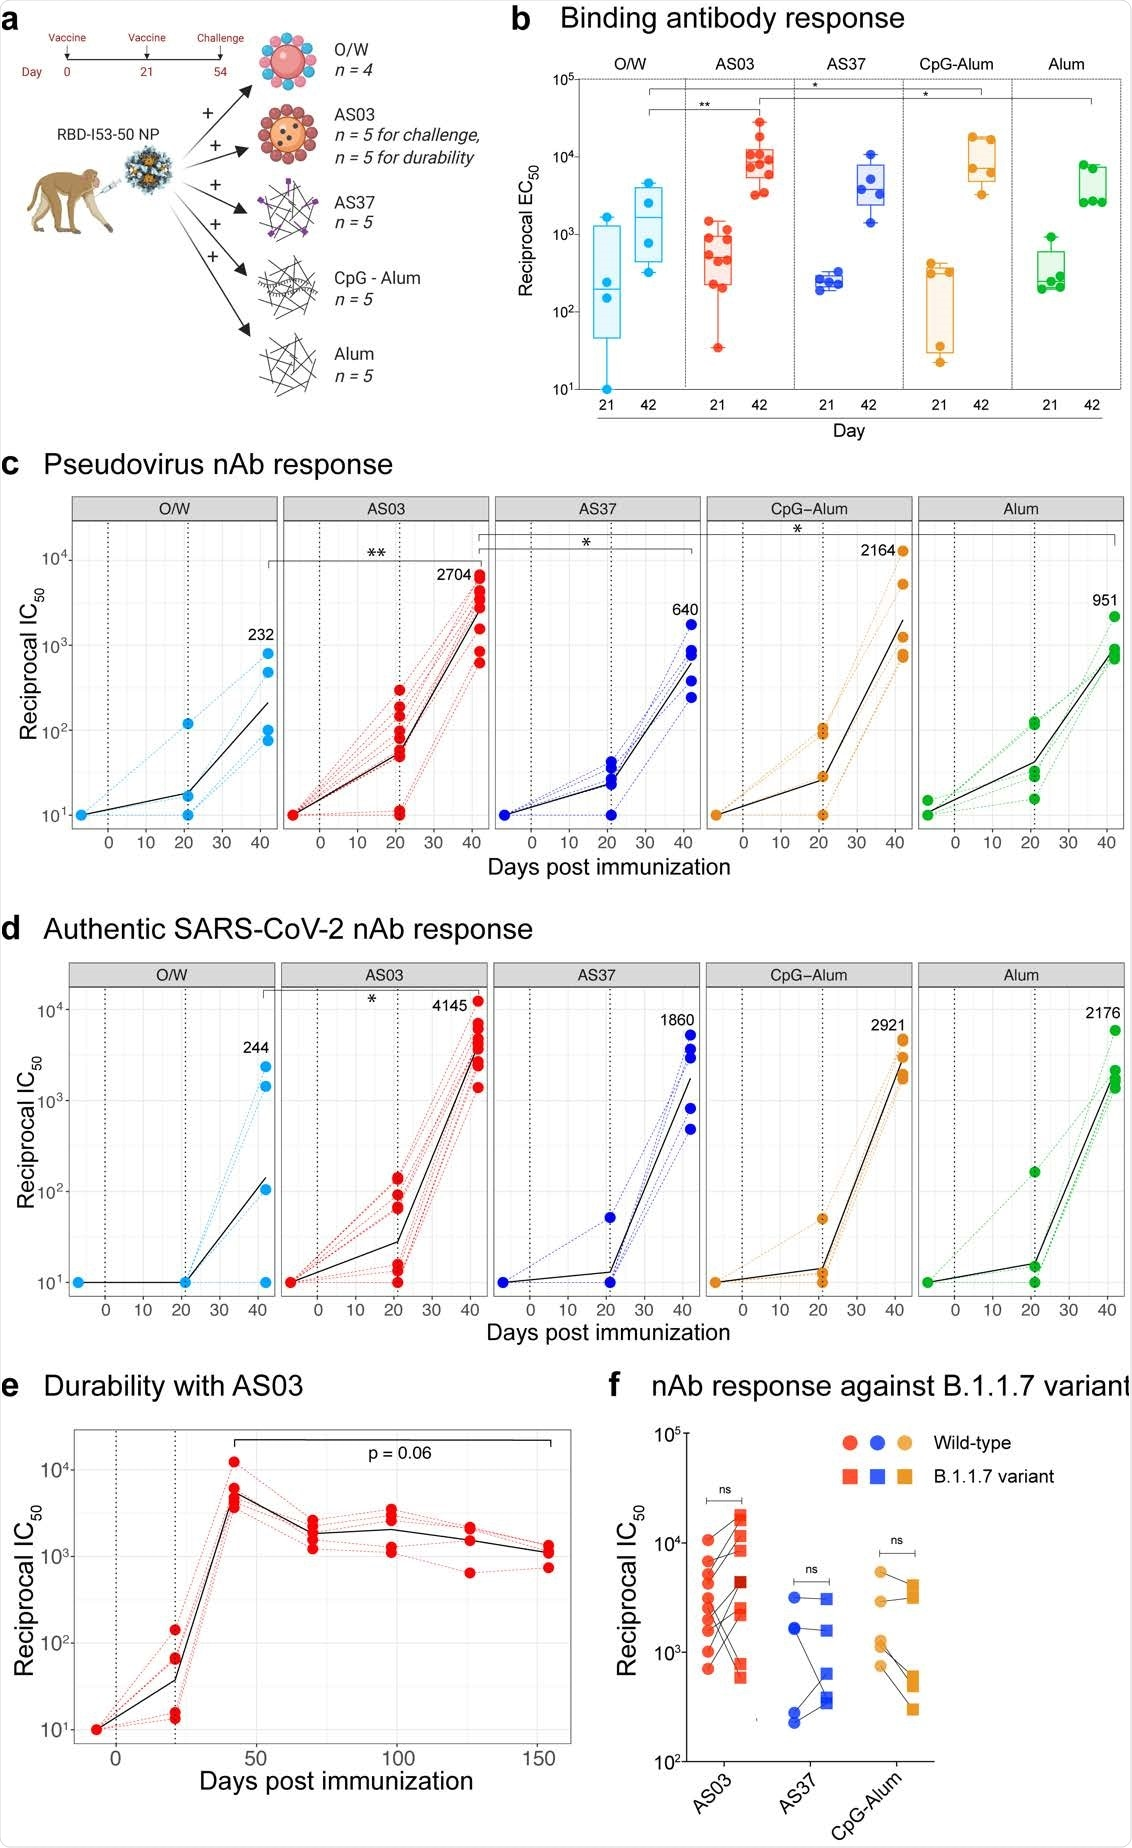 SARS-CoV-2 RBD-NP immunization induces robust antibody responses a, Schematic representation of the study design. b, SARS-CoV-2 S-specific IgG titers (plotted as reciprocal EC50) in sera collected at days 21 and 42 measured by ELISA. The box shows median and 25th and 75th percentiles and the error bars show the range. c - d, Serum nAb titers (plotted as reciprocal IC50) determined using a SARS-CoV-2 S pseudovirus (c) and authentic SARS-CoV-2 (d) entry assay at day -7, 21 and 42. In c and d, the black line represents the geometric mean of all data points. The numbers represent geometric mean titers on day 42. Asterisks represent the statistically significant differences between two groups analyzed by two-sided Mann-Whitney rank-sum test (* p < 0.05, ** p < 0.01). e, SARS-CoV-2 S-specific nAb titers against authentic SARS-CoV-2 virus measured at time points indicated on X-axis. Statistical difference between the time points was analyzed by two-sided Wilcoxon matched-pairs signed-rank. f, Serum nAb titers against the wild-type (circles) or the B1.1.7 (squares) variant live-virus measured in serum collected at day 42, 3 weeks following secondary immunization. The statistical differences between wildtype and variant within each group were analyzed by two-sided Wilcoxon matched-pairs signed-rank test (* p < 0.05).